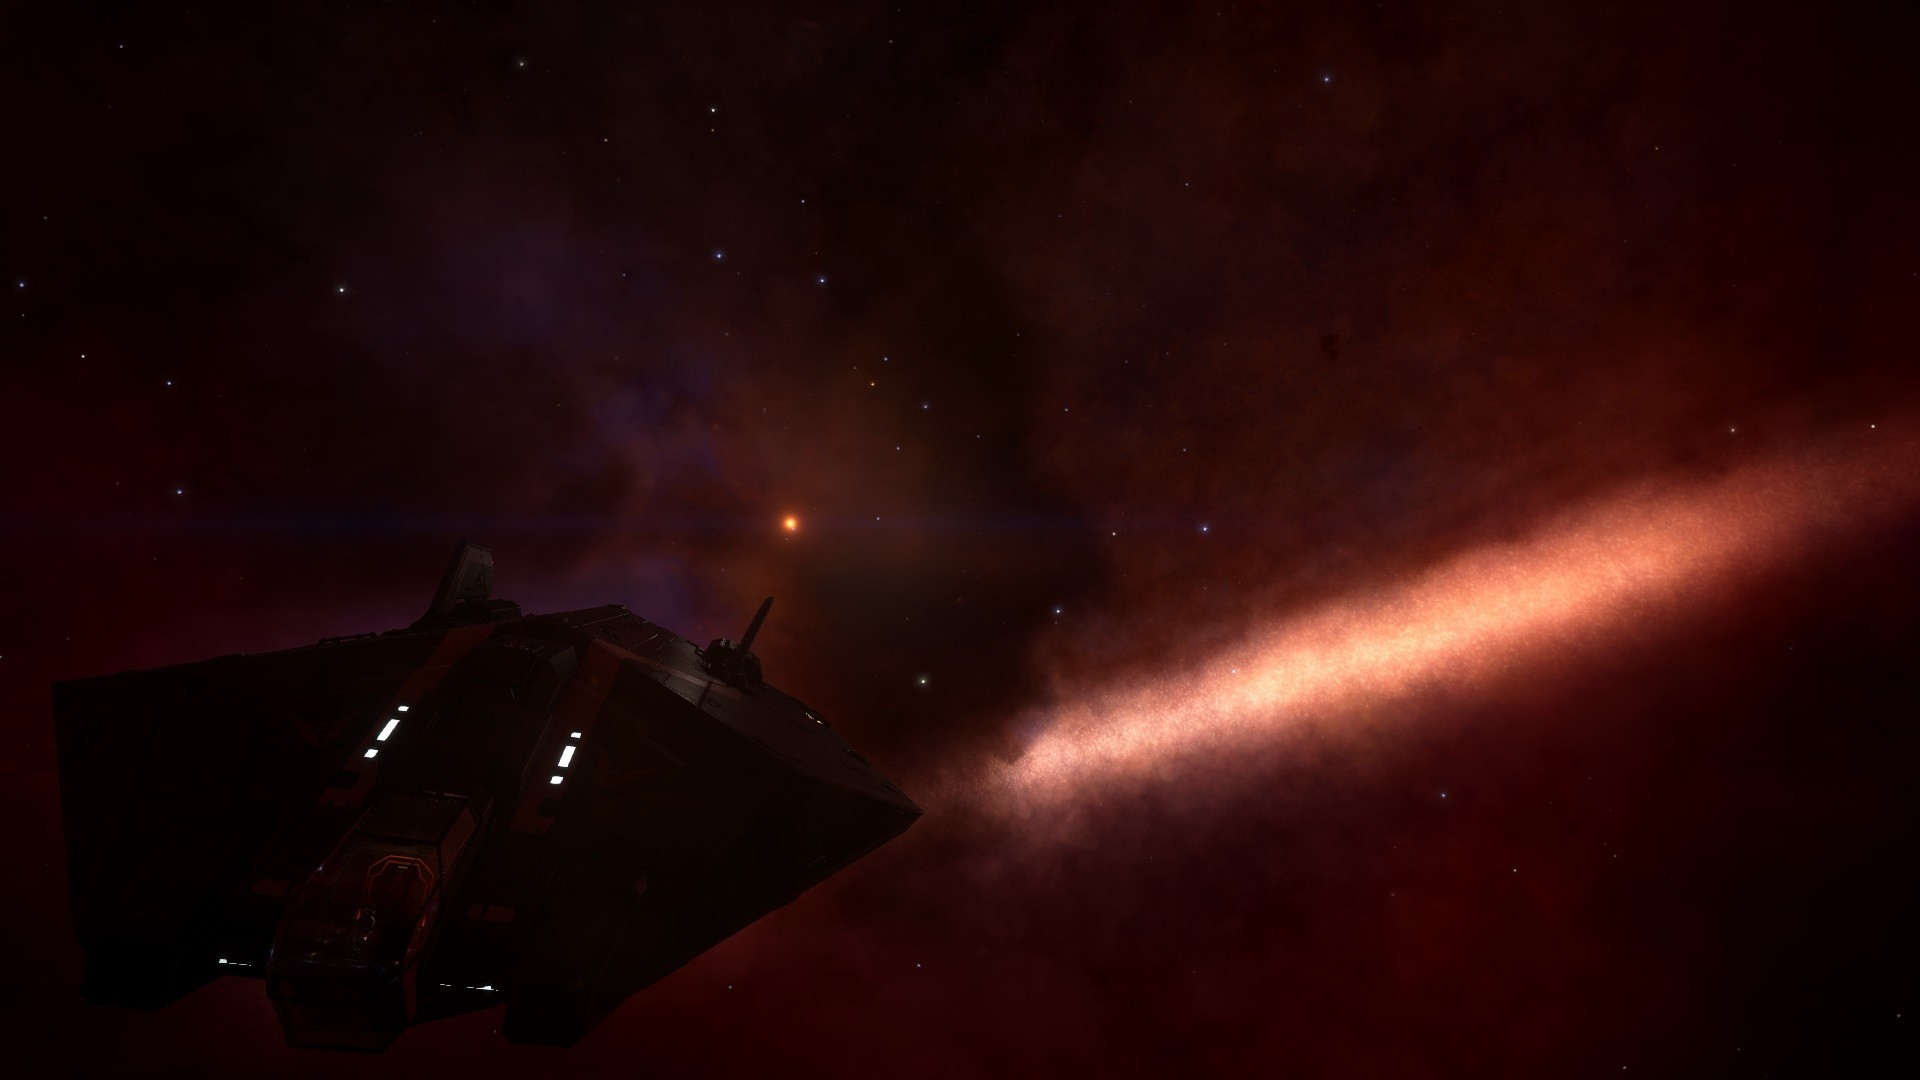 Elite: Dangerous - Milky Way from The Orion Nebula.